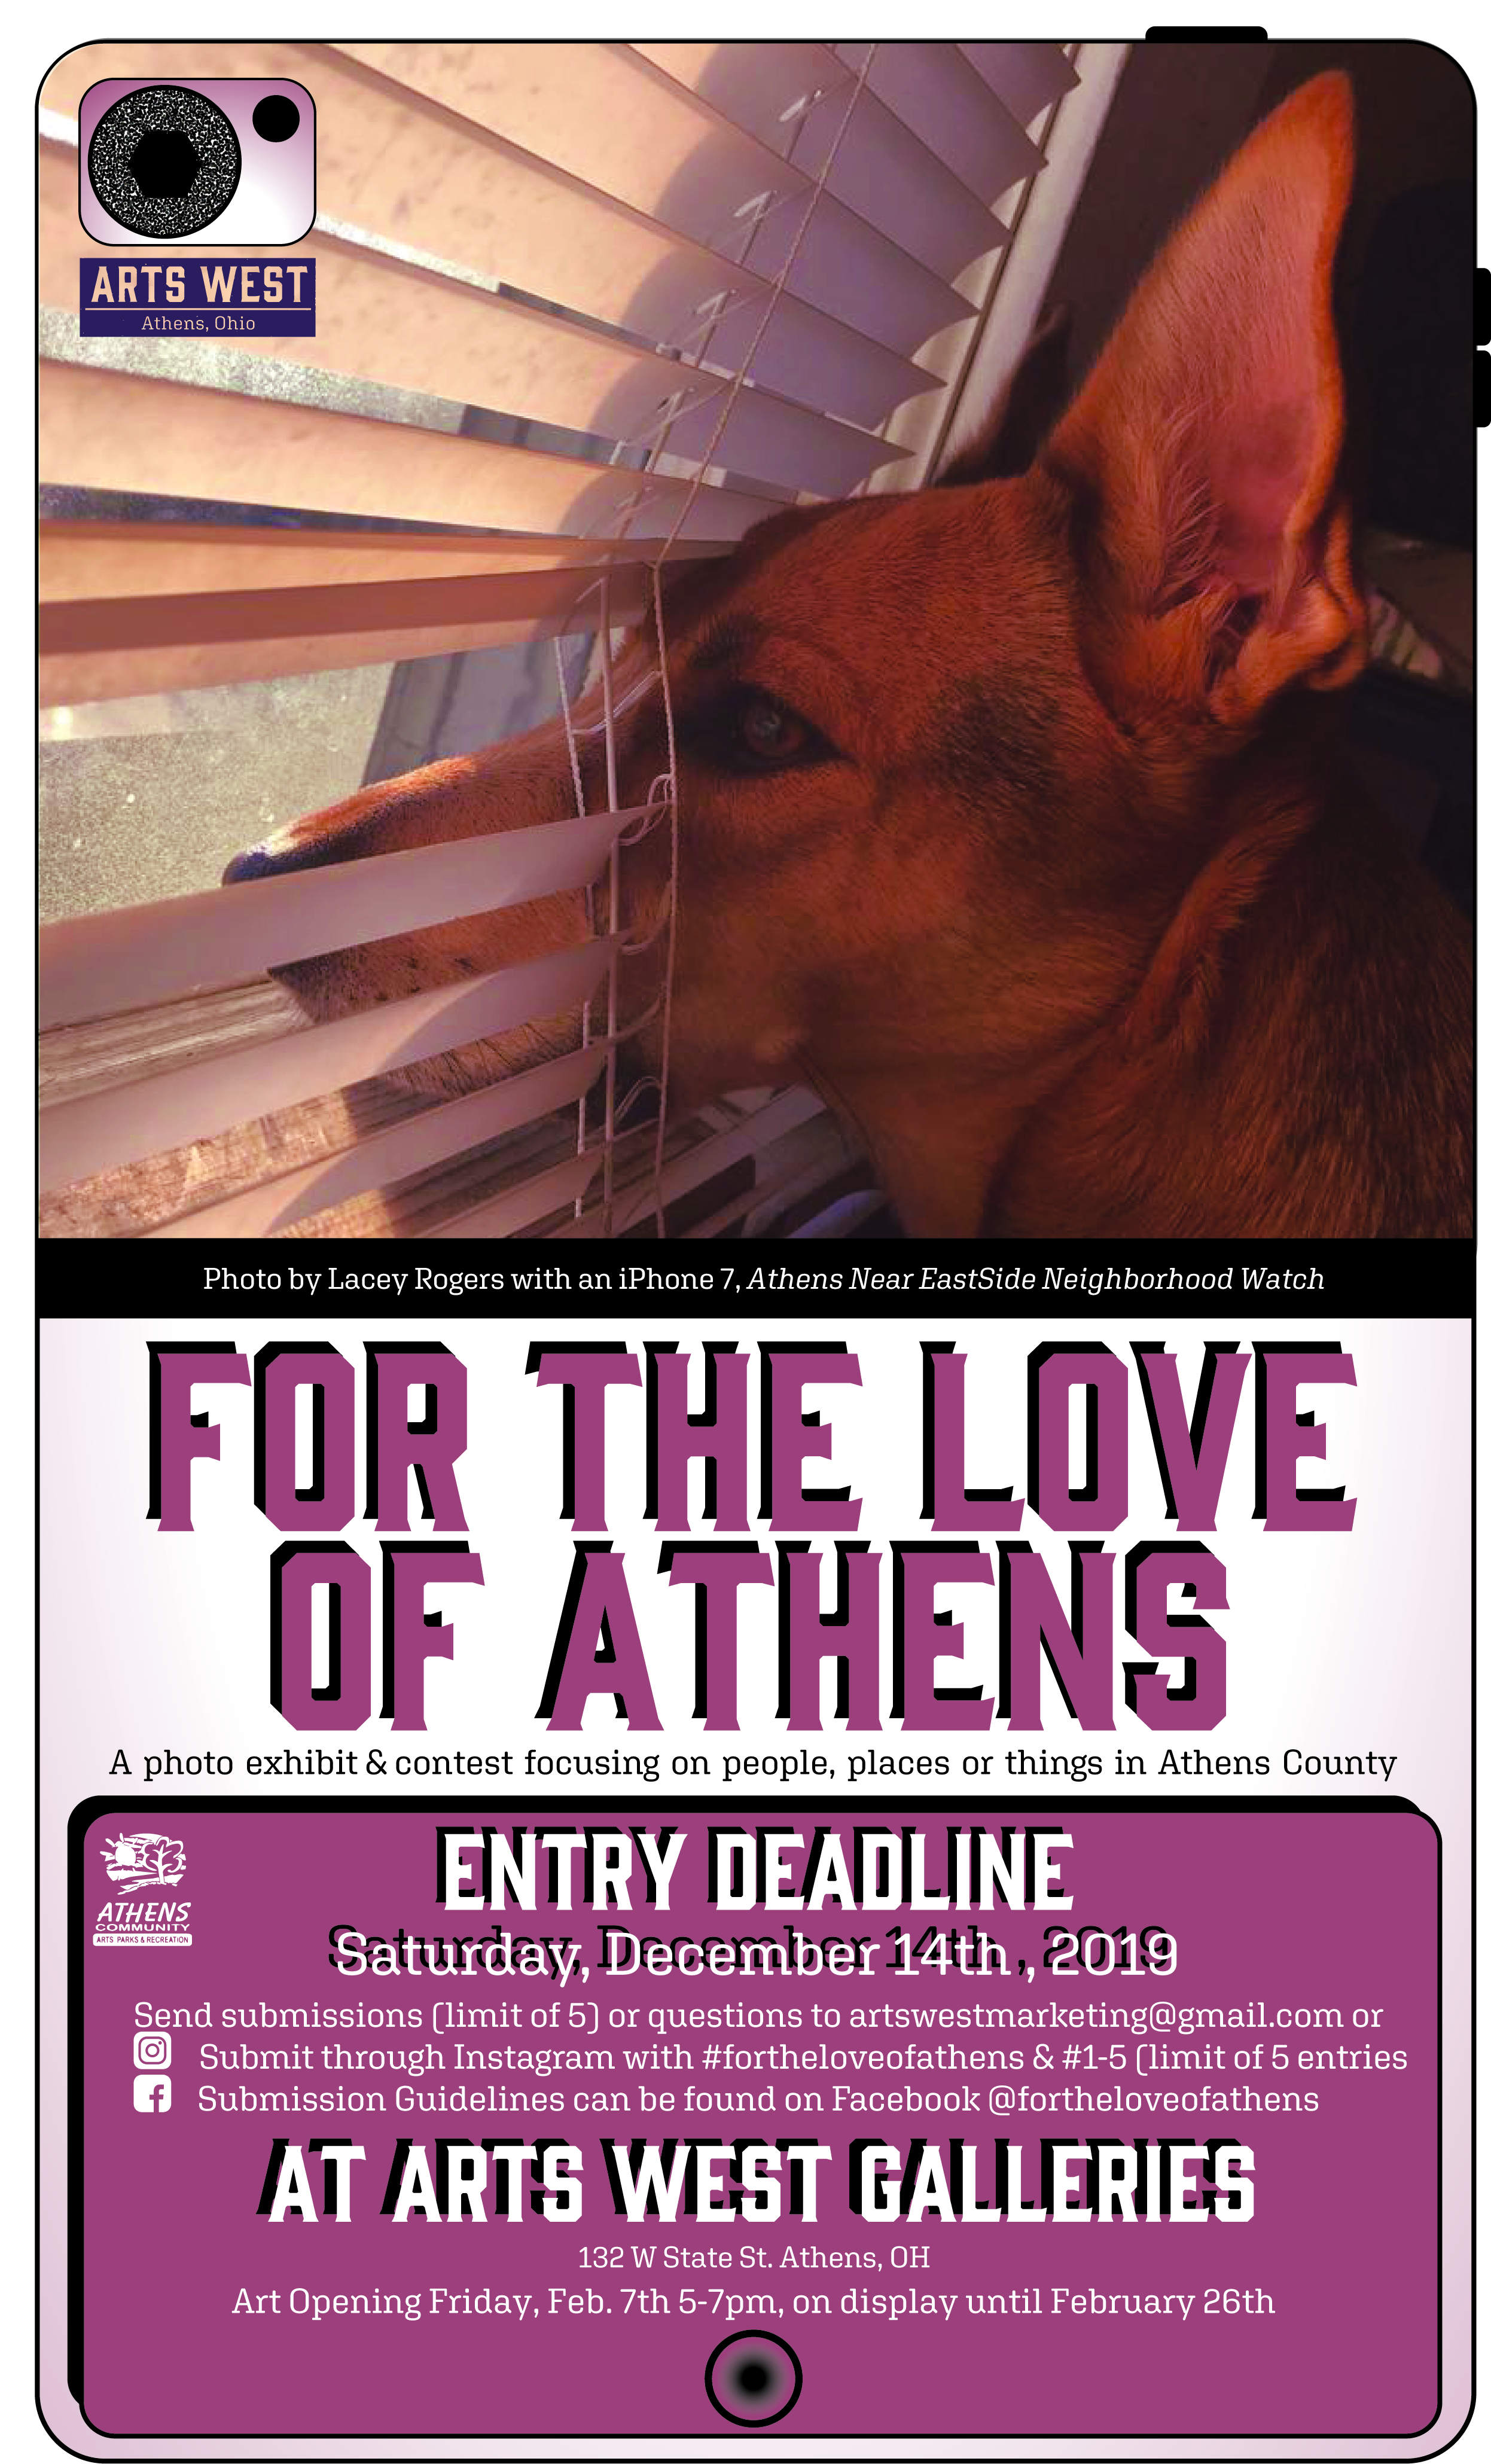 For the love of Athens Photo Exhibit